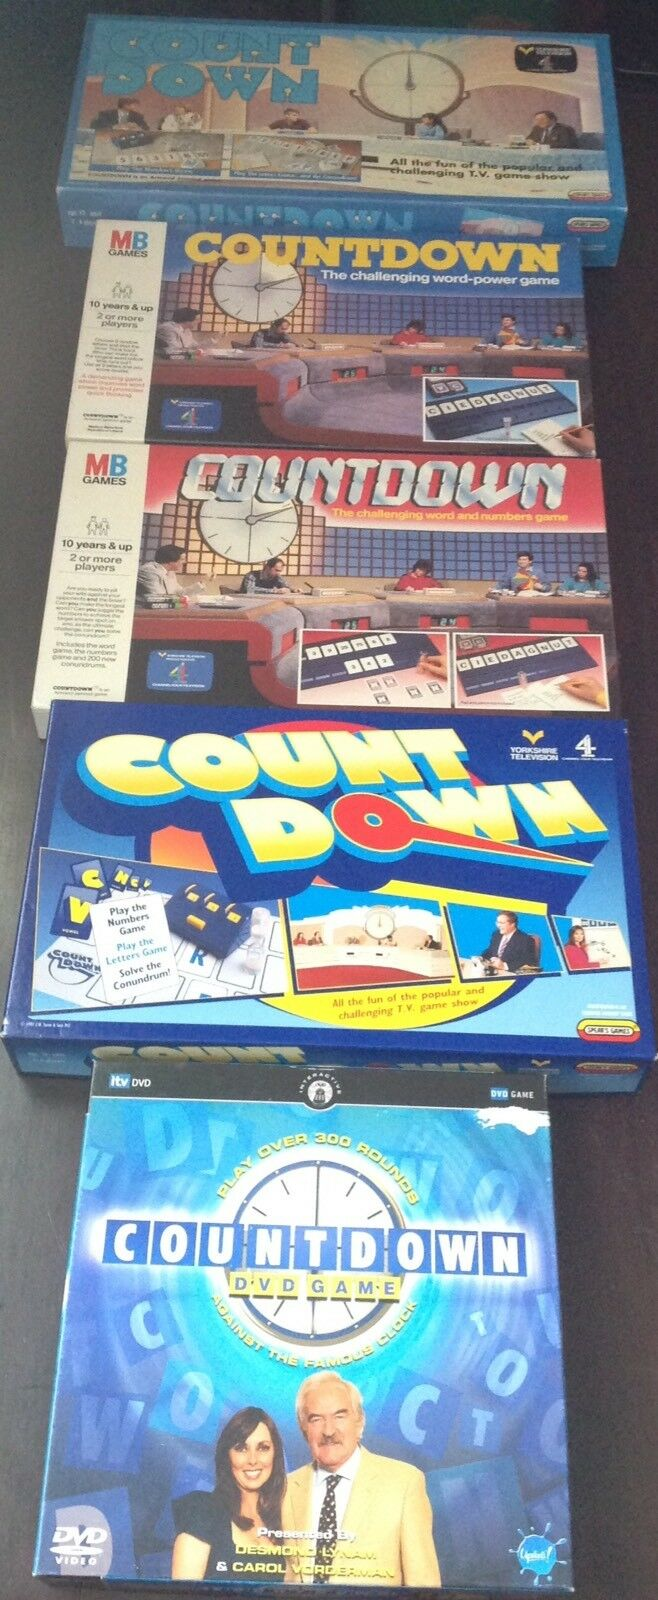 Countdown through the eras  Spears Games   MB Games board game   bundle job lot